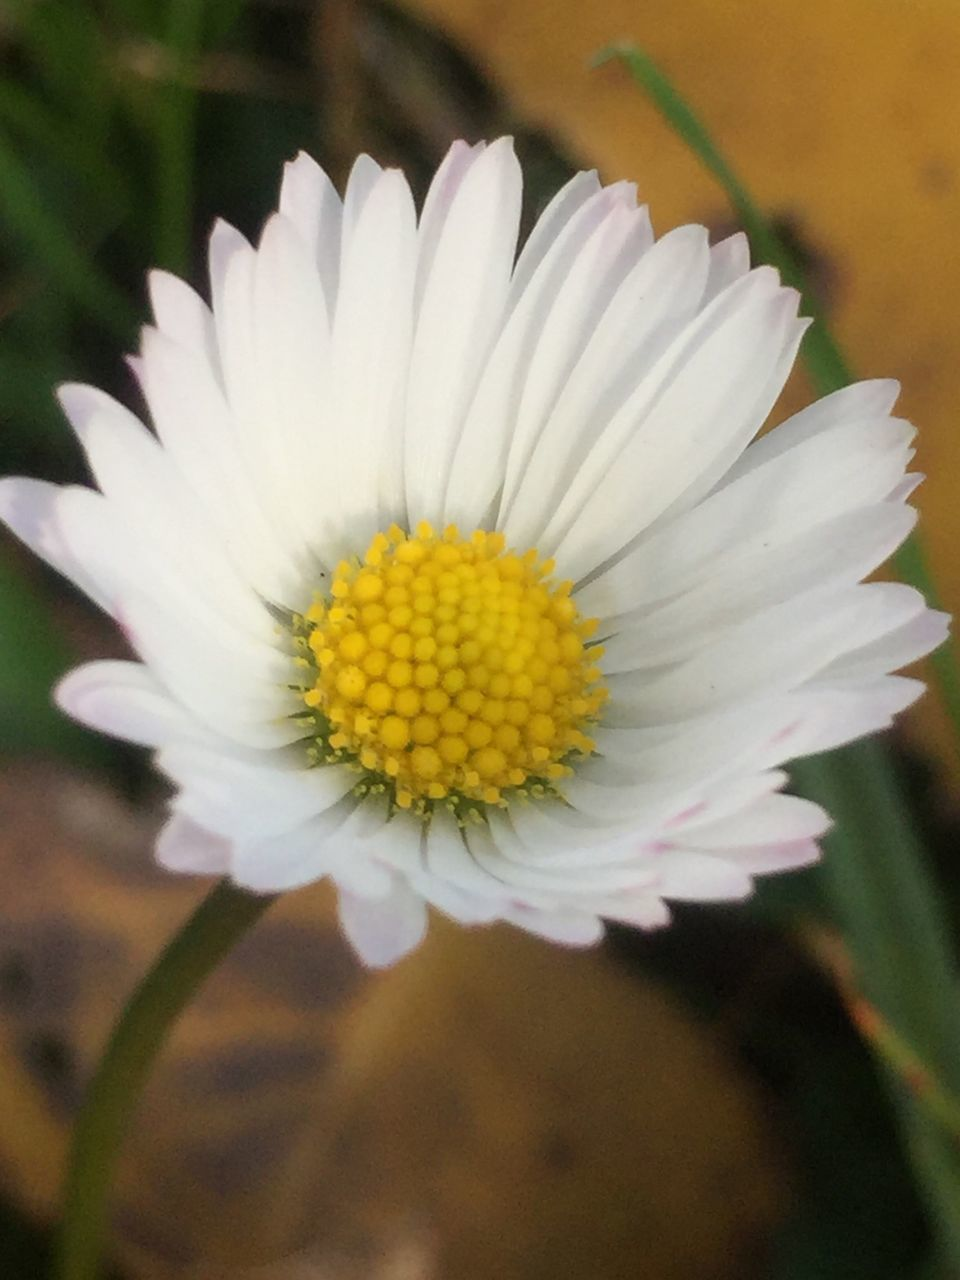 flower, petal, fragility, beauty in nature, flower head, nature, freshness, growth, white color, pollen, blooming, close-up, yellow, plant, day, no people, outdoors